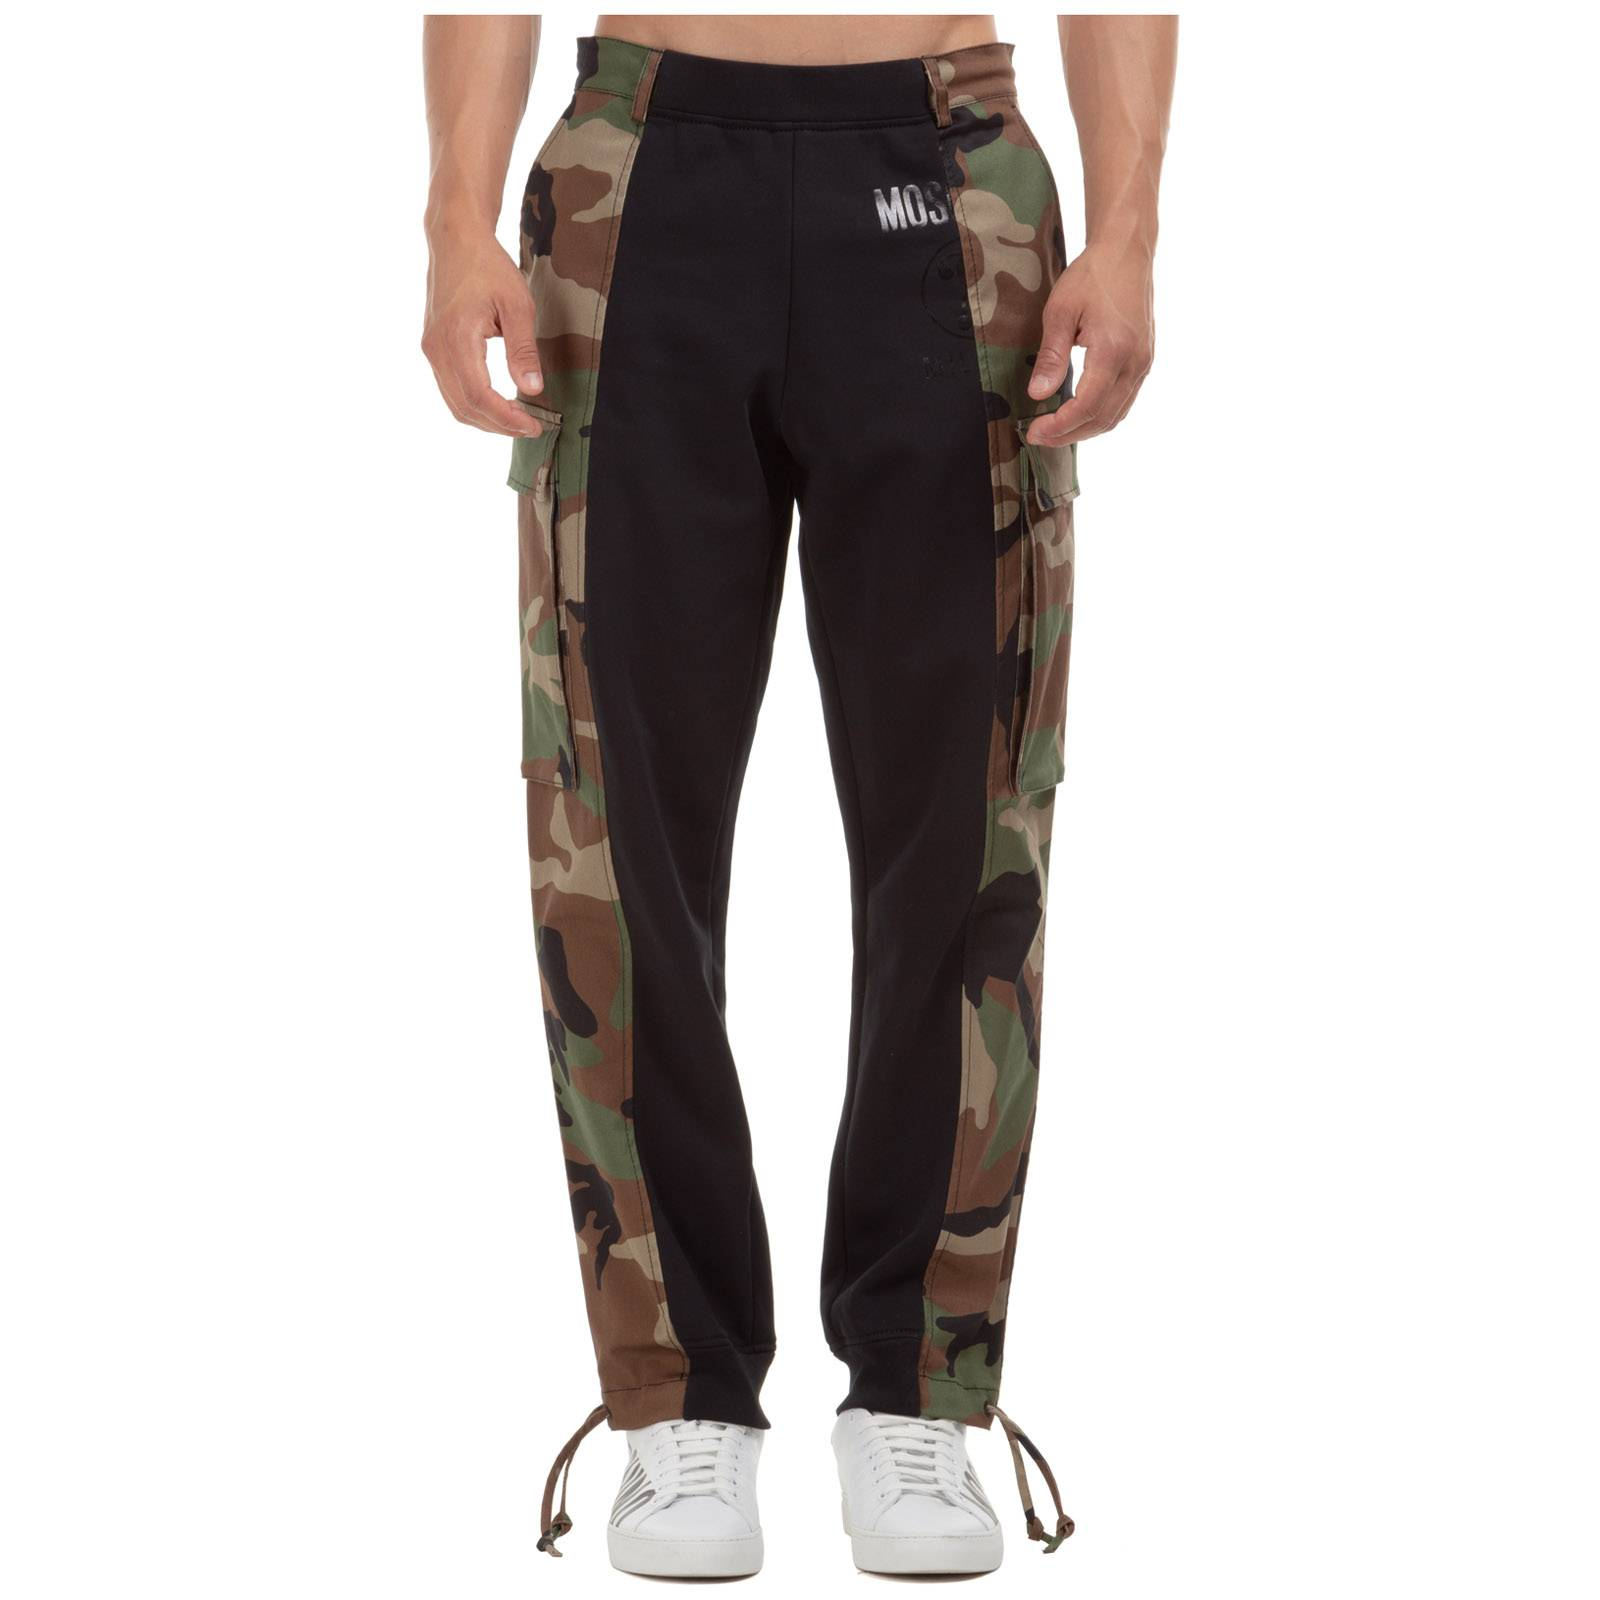 Moschino Men's sport tracksuit trousers  - Grey - Size: 50